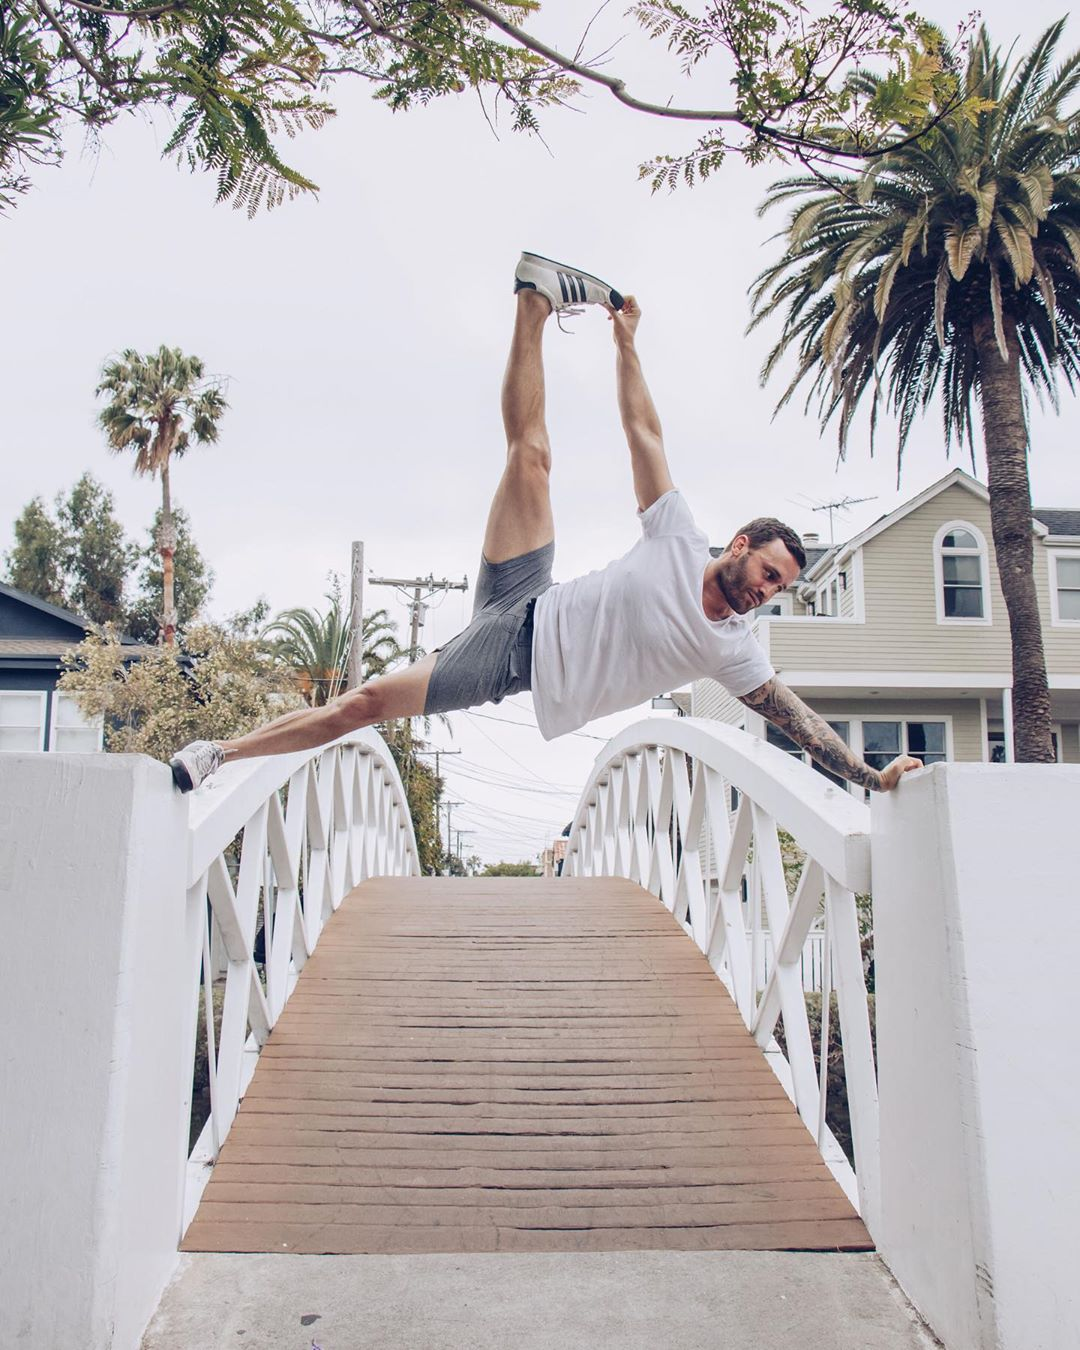 """""""My life coach is my coke dealer,"""" the things you hear in Venice - Calvin Corzine Yoga"""